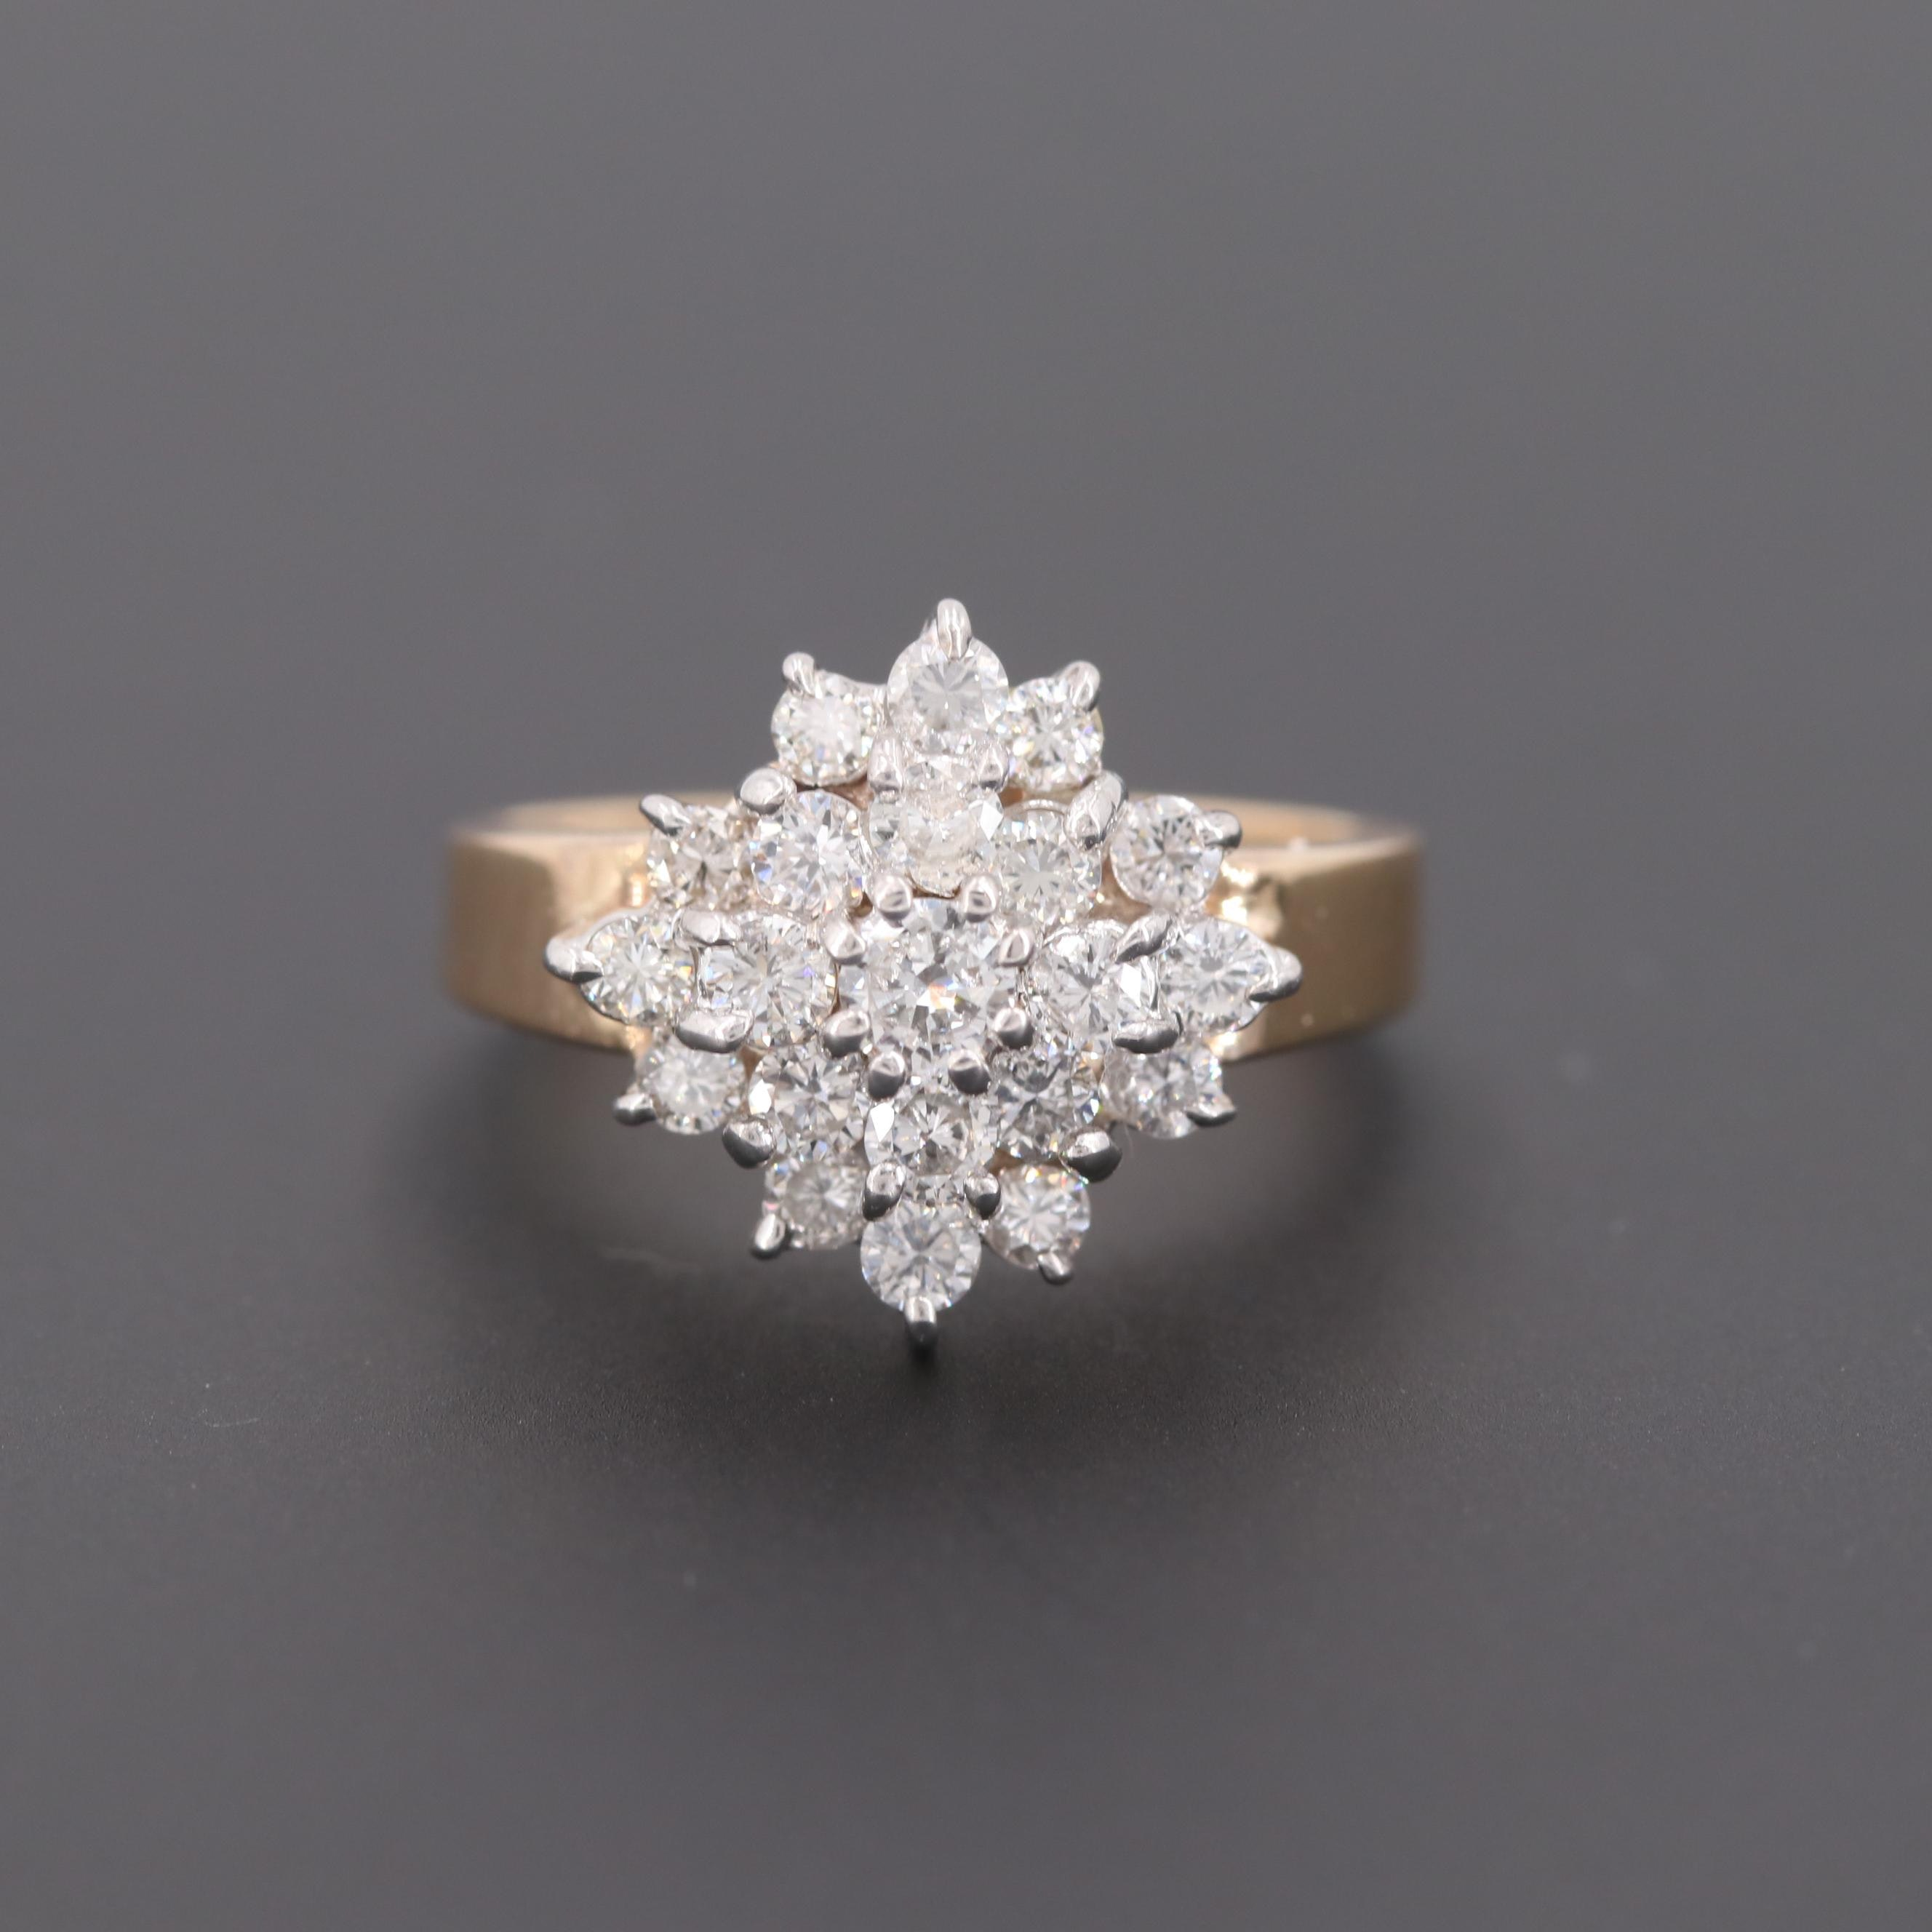 14K Yellow Gold 1.12 CTW Diamond Cluster Ring